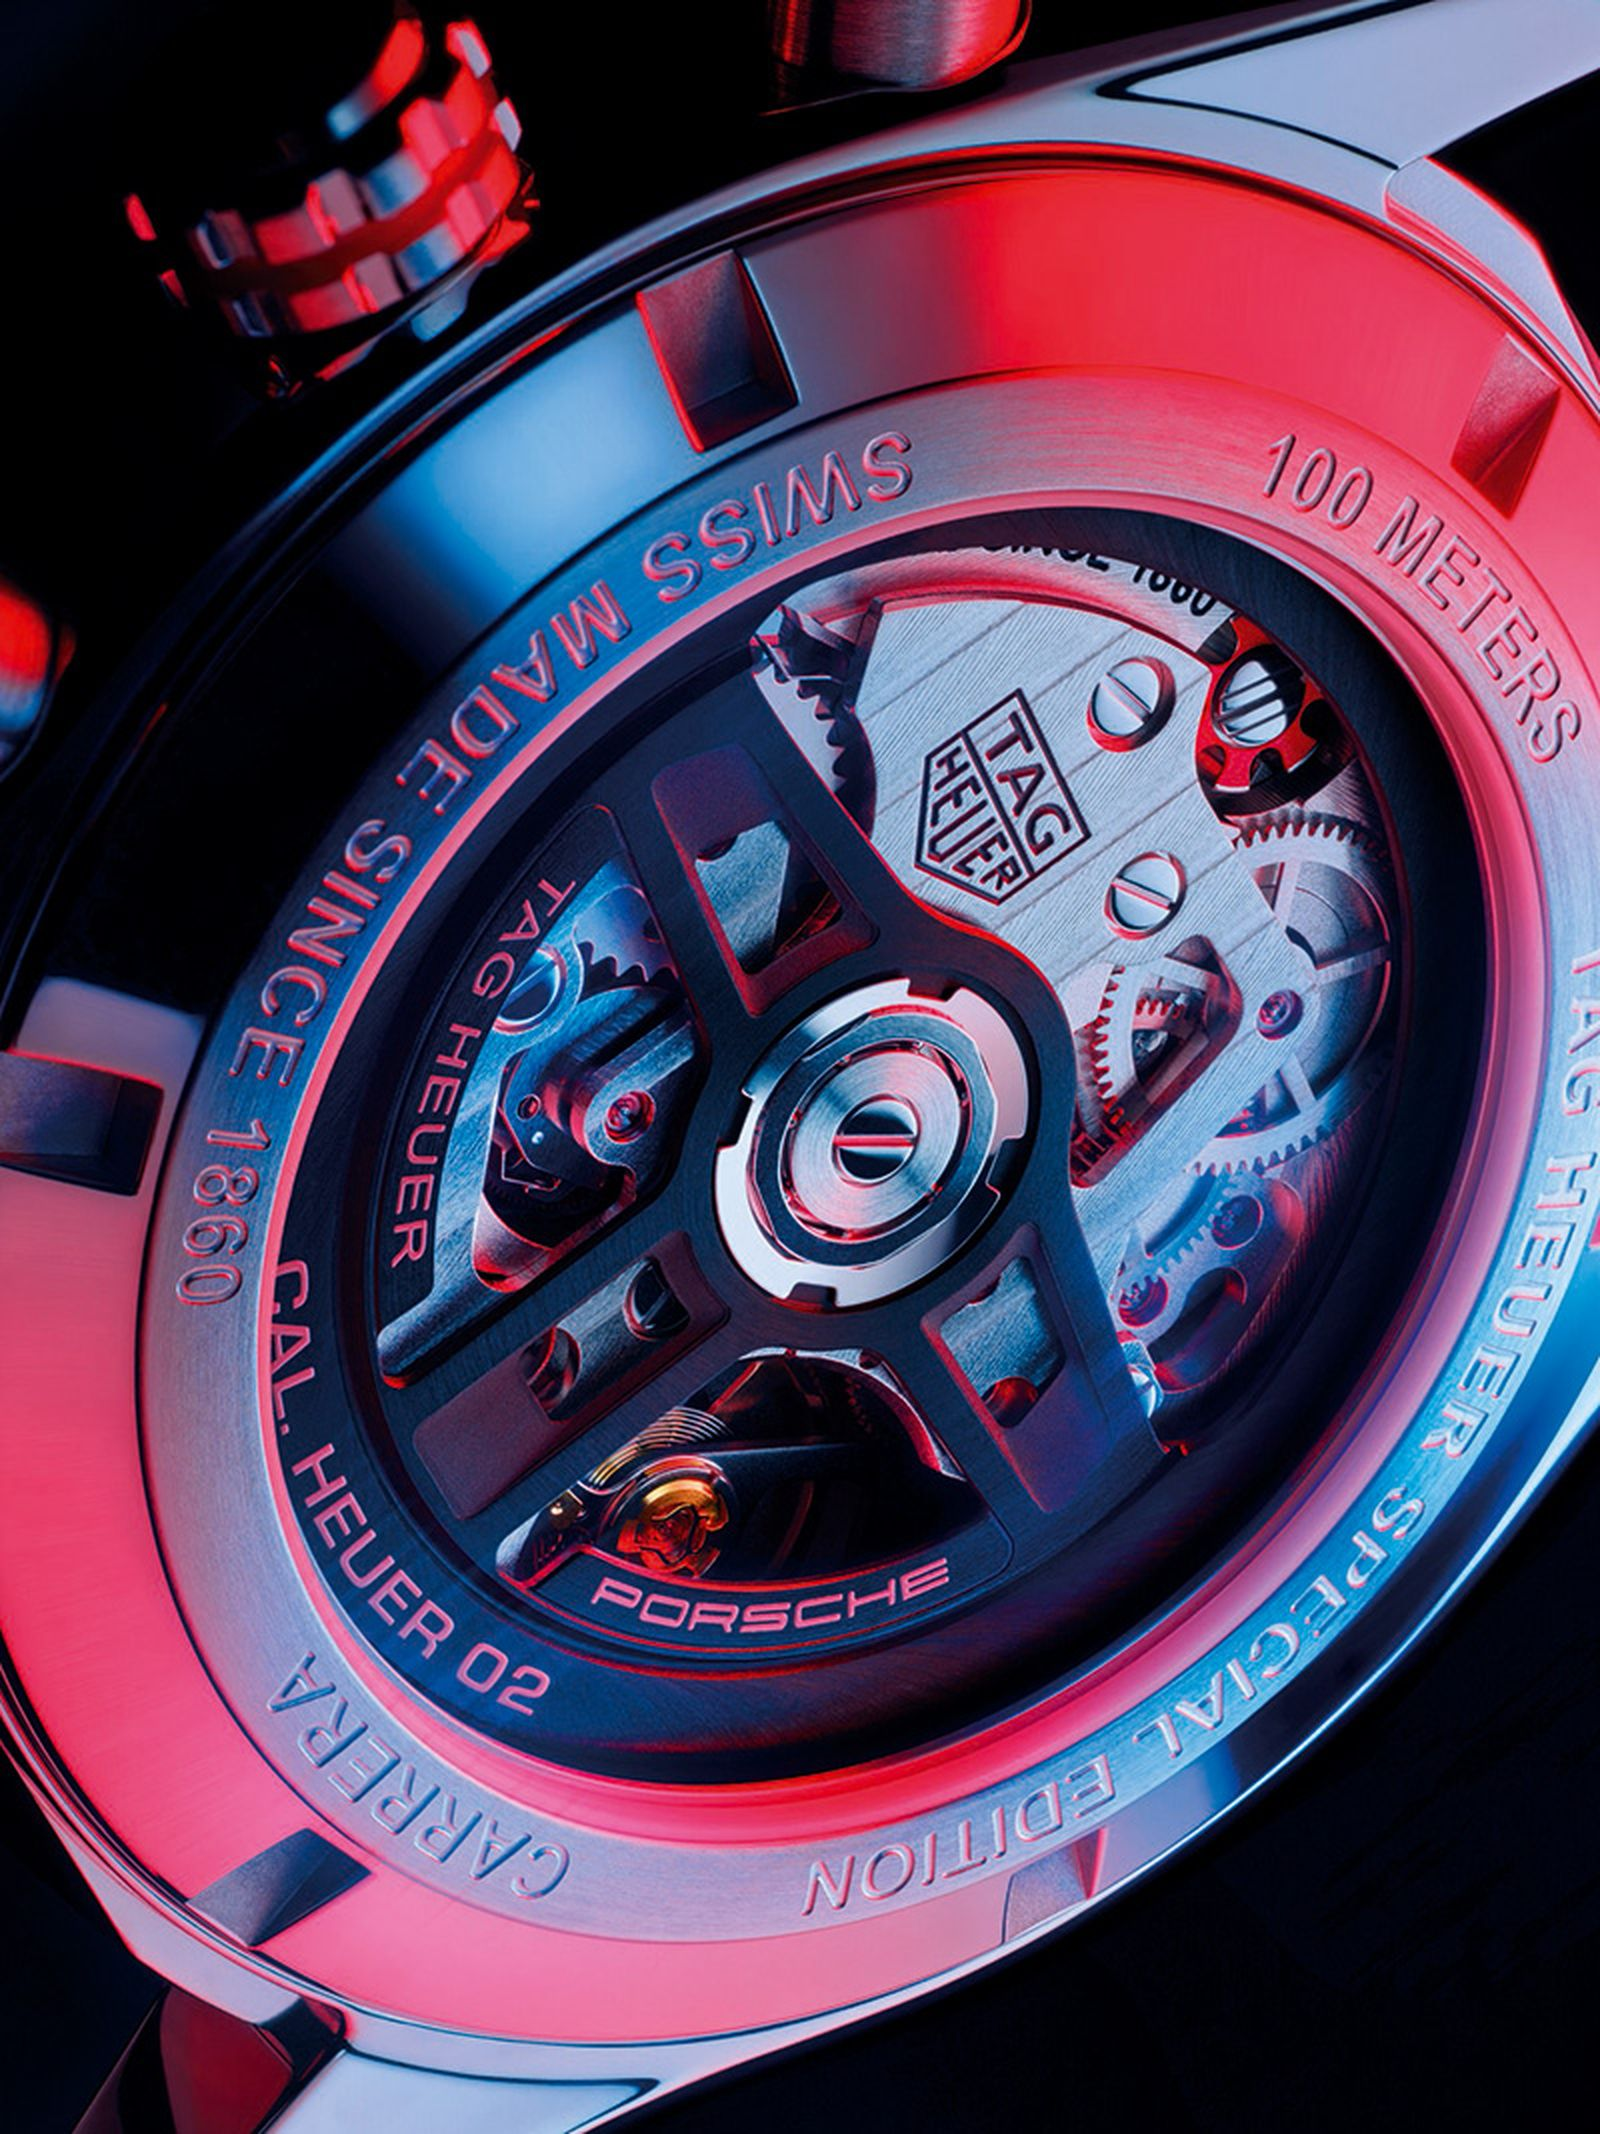 tag-heuer-porsche-carrera-chronograph-watch-detail-06